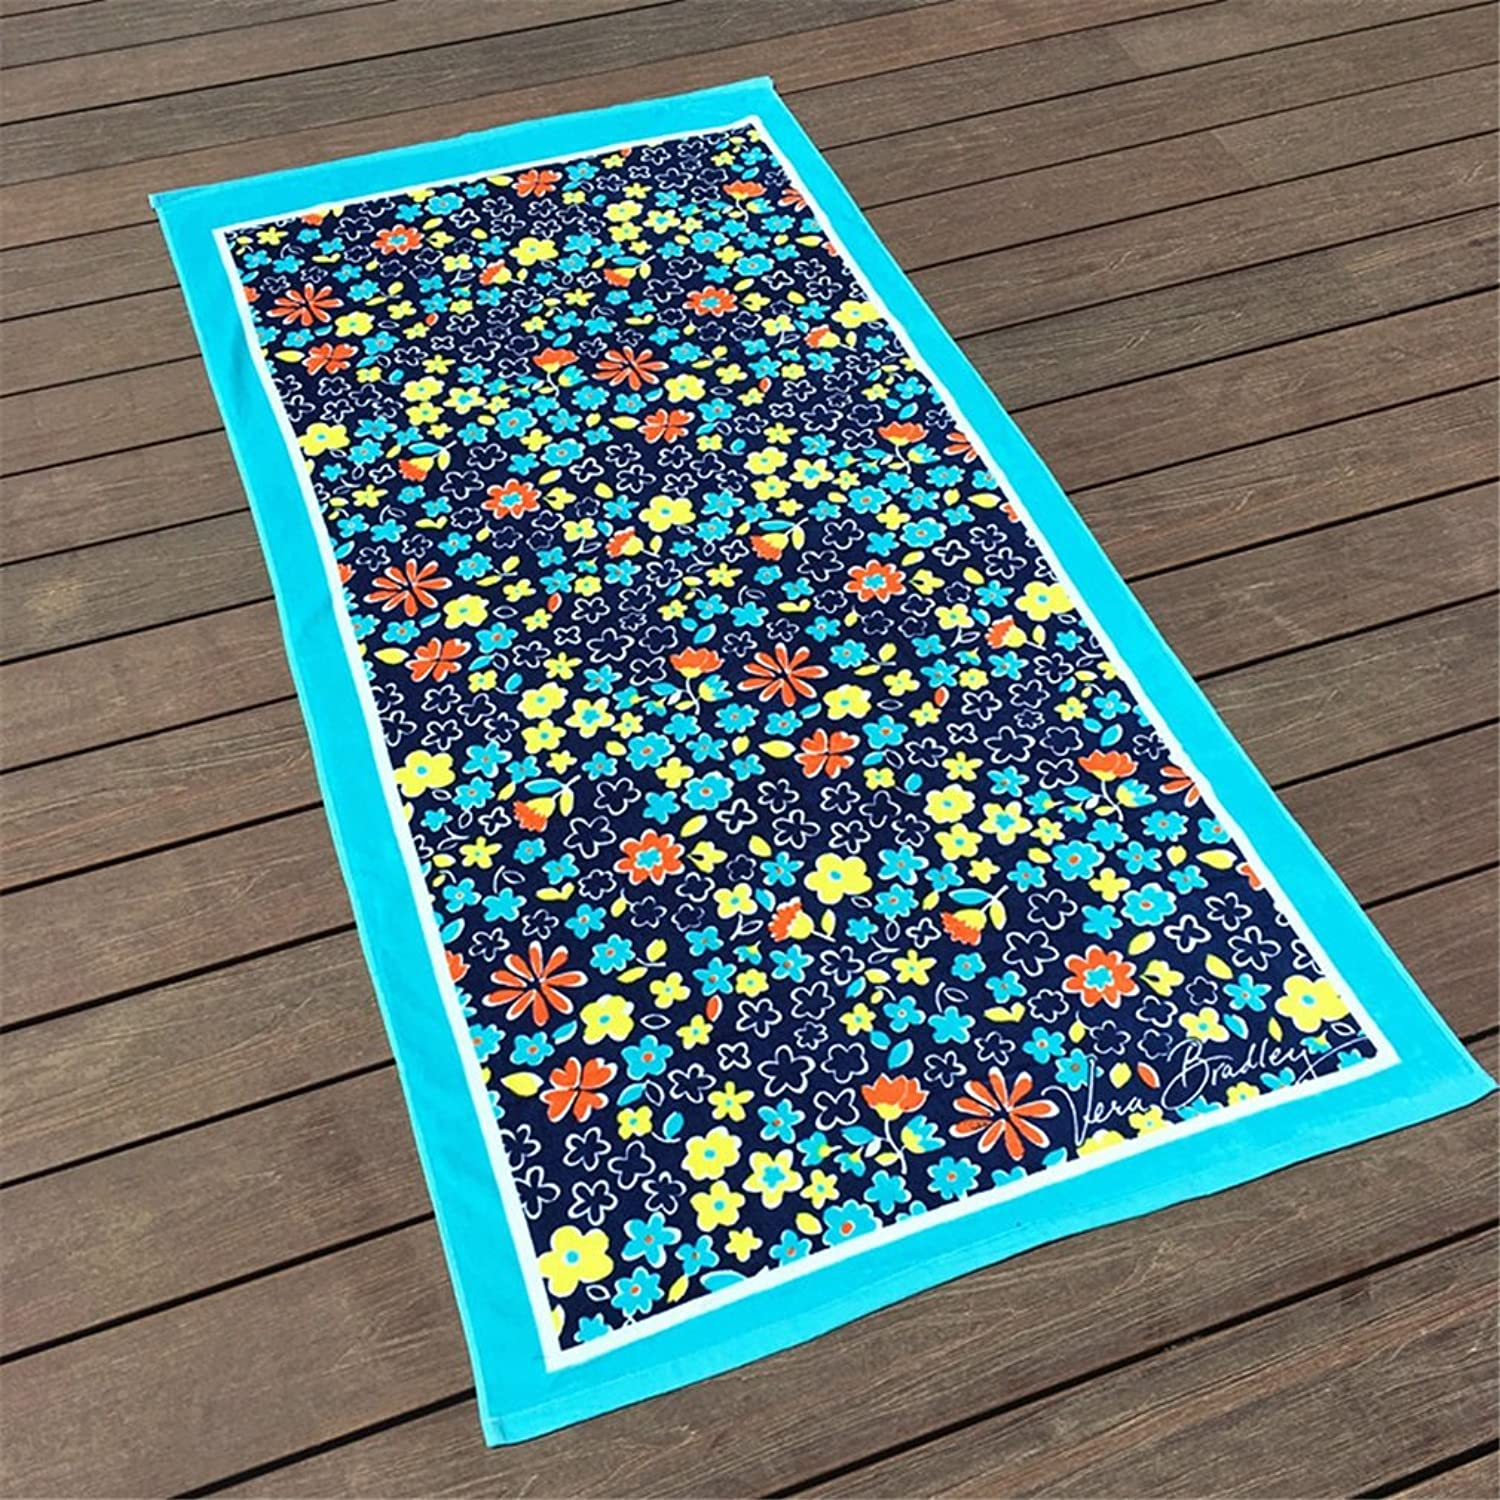 Beach Towels Large Bath Towel 10 Styles Ethnic Style Thick Cotton Adult Beach Towel Pool Massage Sauna Beach Yacht Gym Fitness Kitchen Yoga Picnic Blanket Home Decoration ( color   6 )